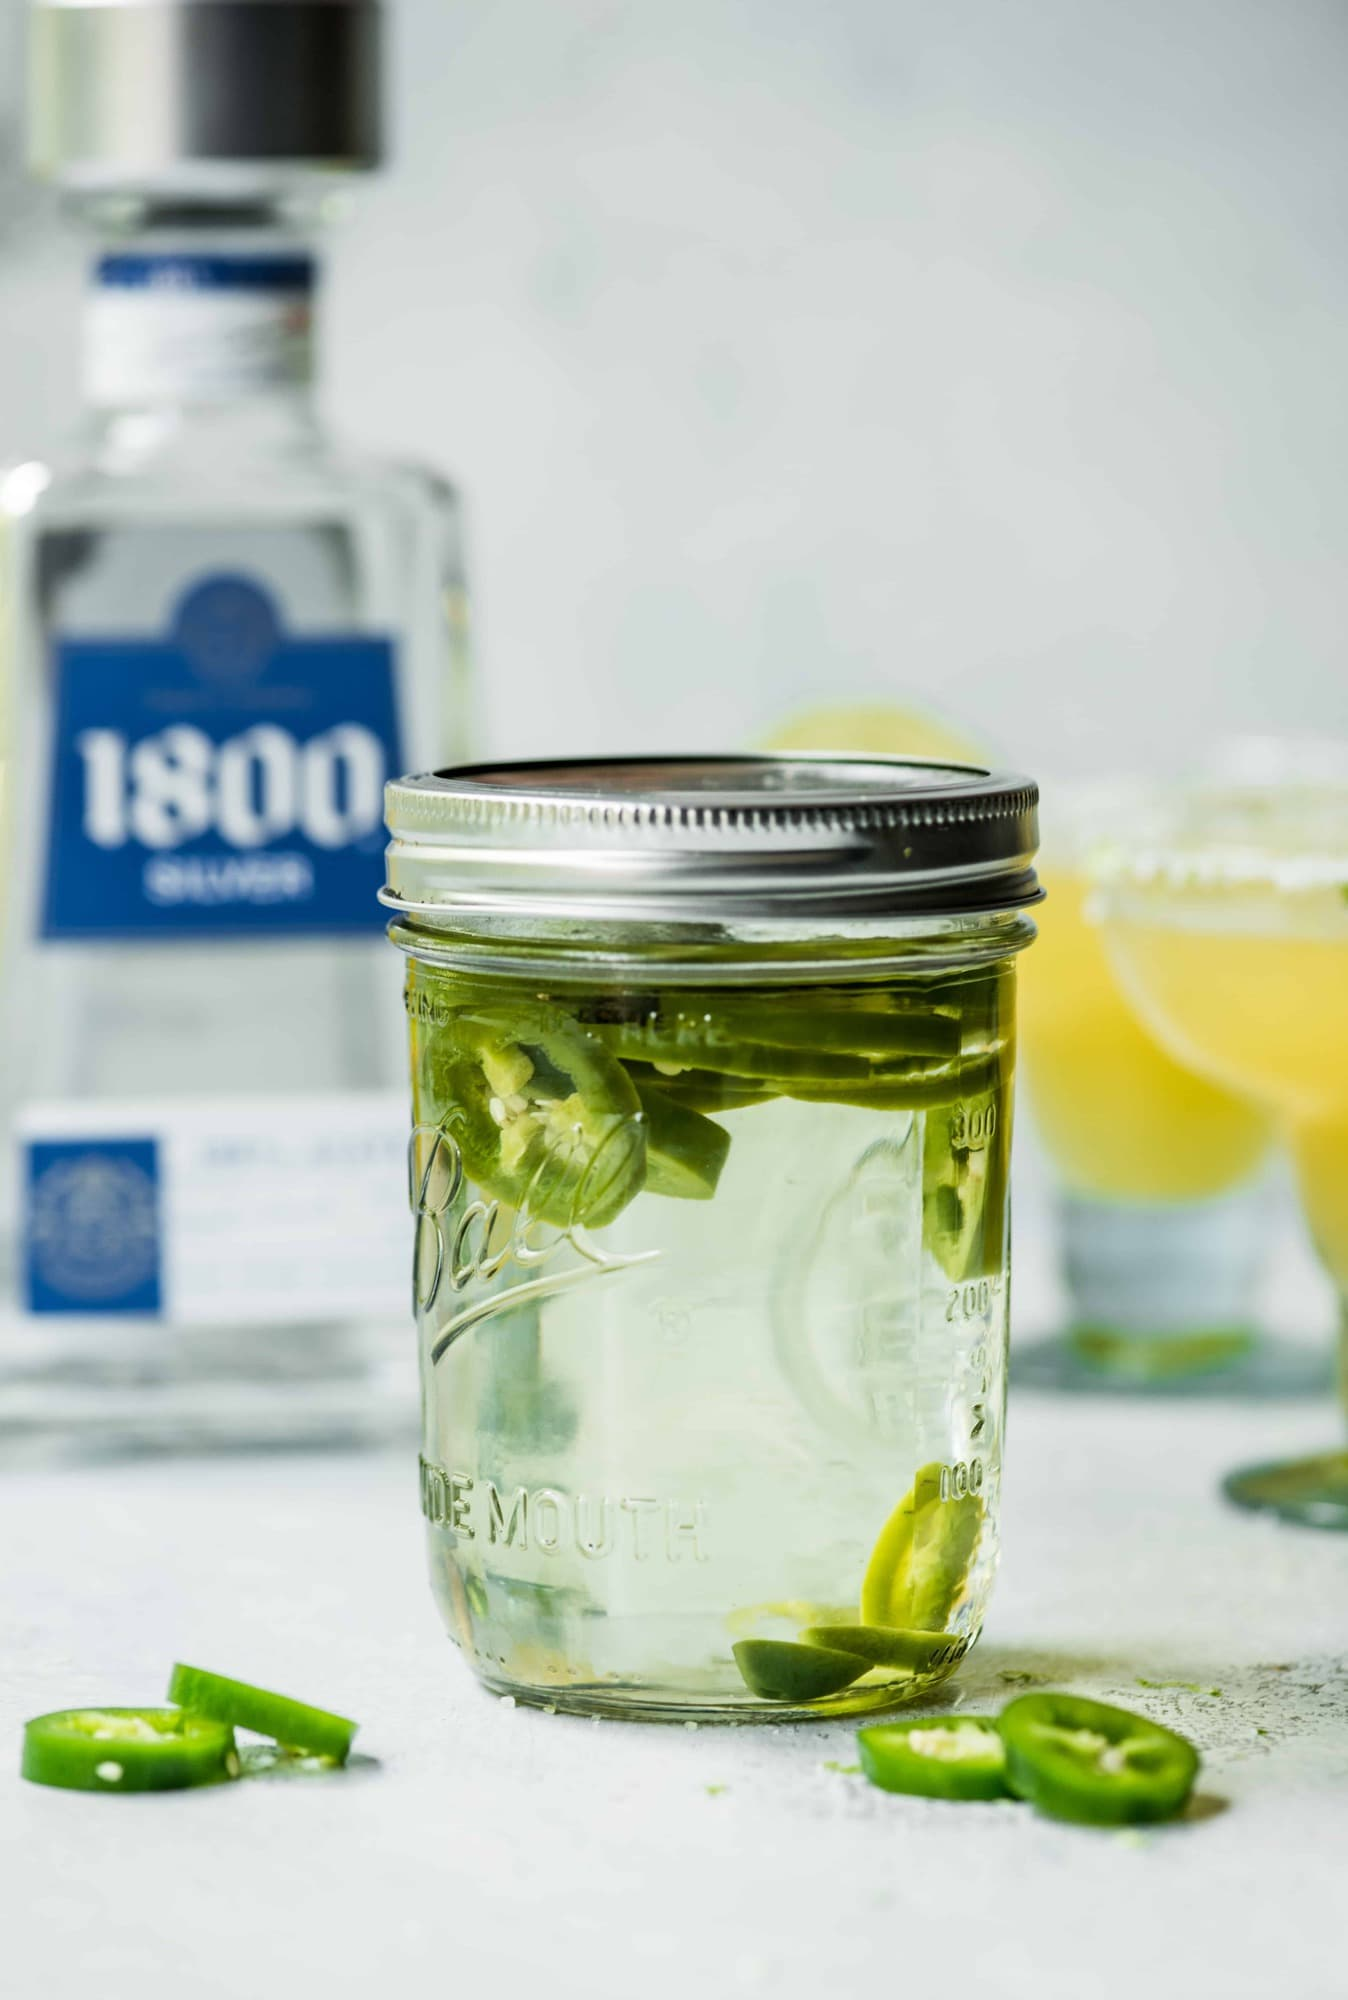 Jalapeno infused tequila in a glass jar